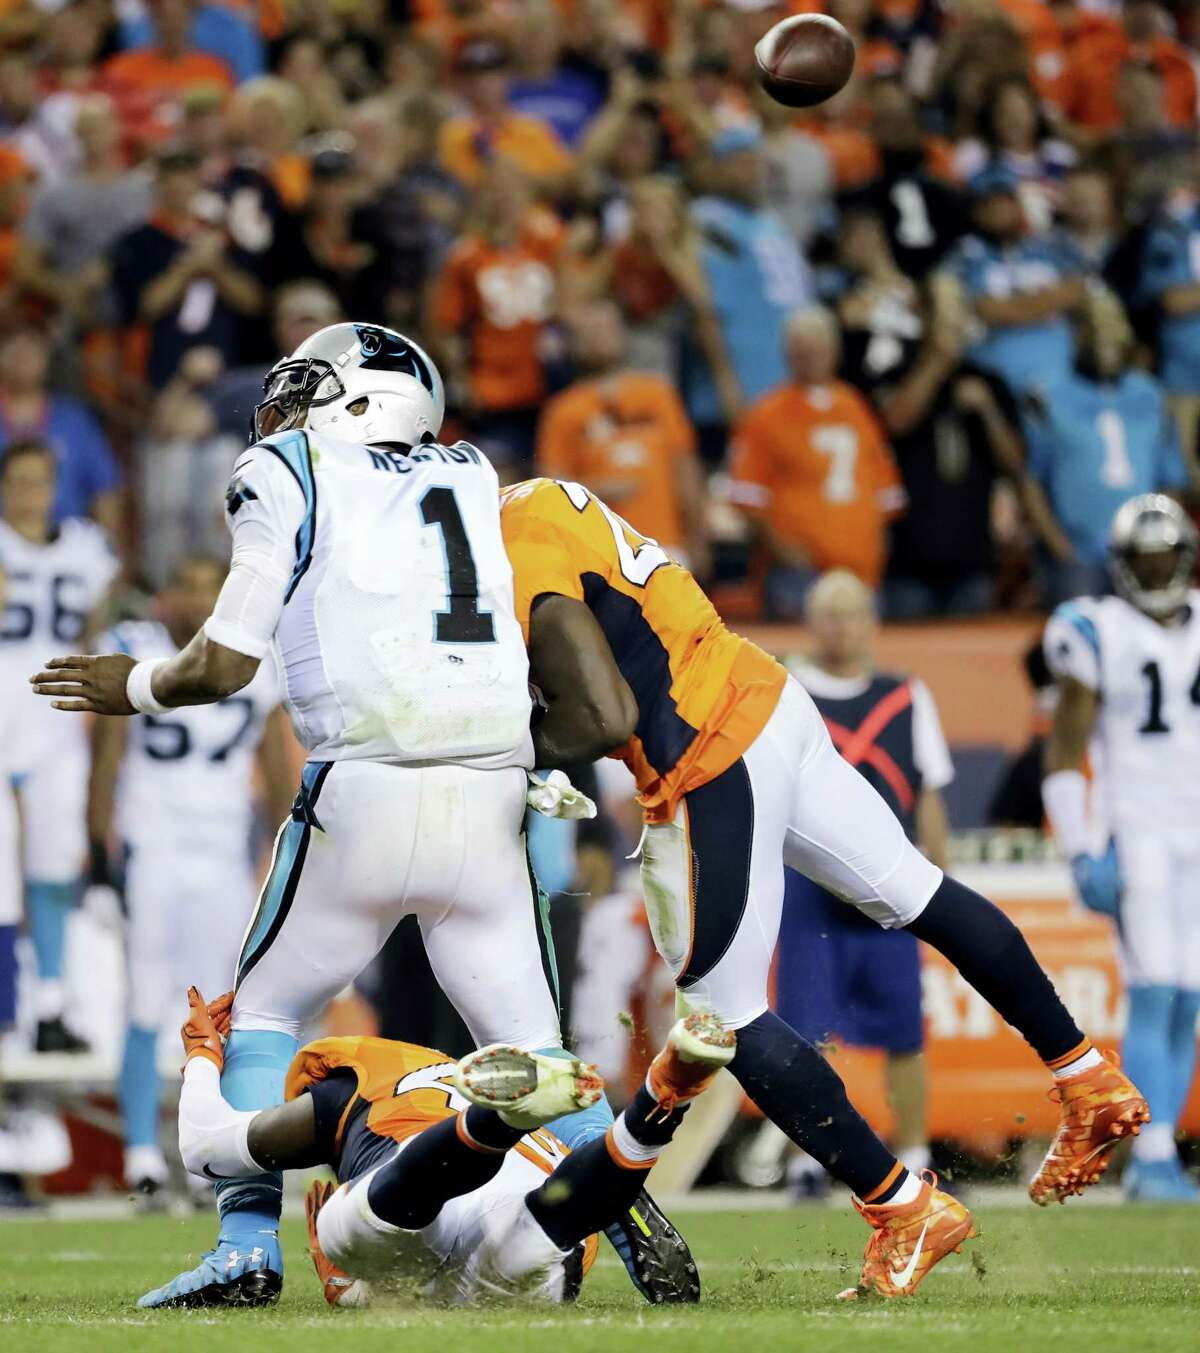 In this Sept. 8, 2016 photo, Denver Broncos free safety Darian Stewart (26) hits Carolina Panthers quarterback Cam Newton (1) late for a penalty during the second half of an NFL football game in Denver.